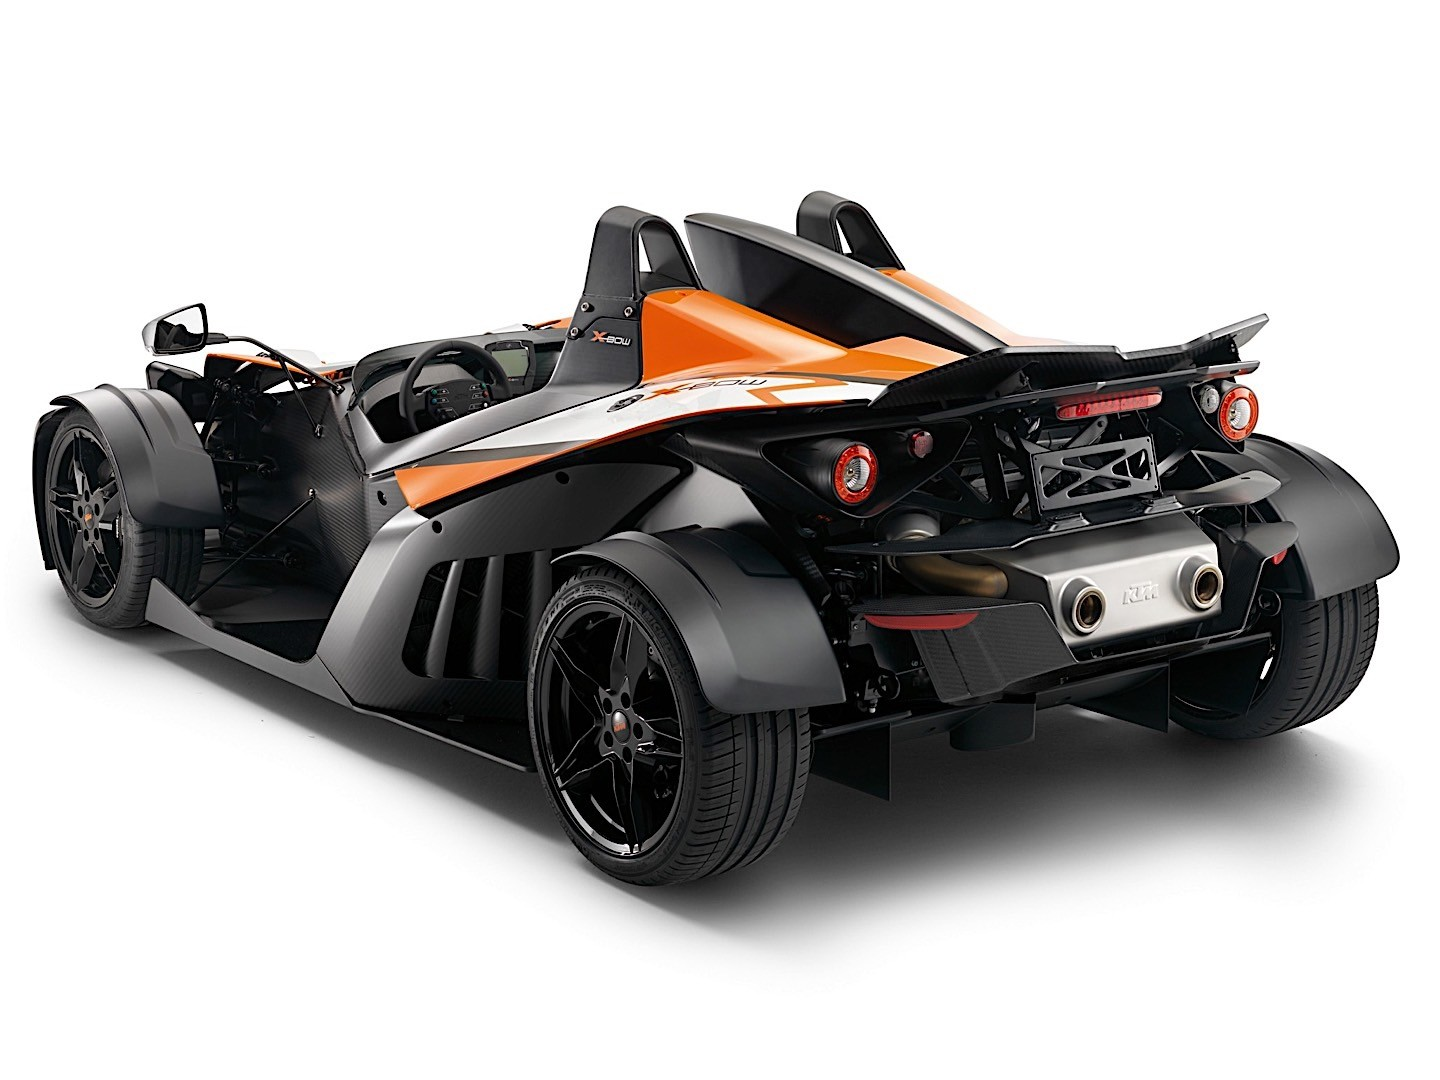 ktm x bow r specs 2011 2012 2013 2014 2015 2016 2017 2018 autoevolution. Black Bedroom Furniture Sets. Home Design Ideas